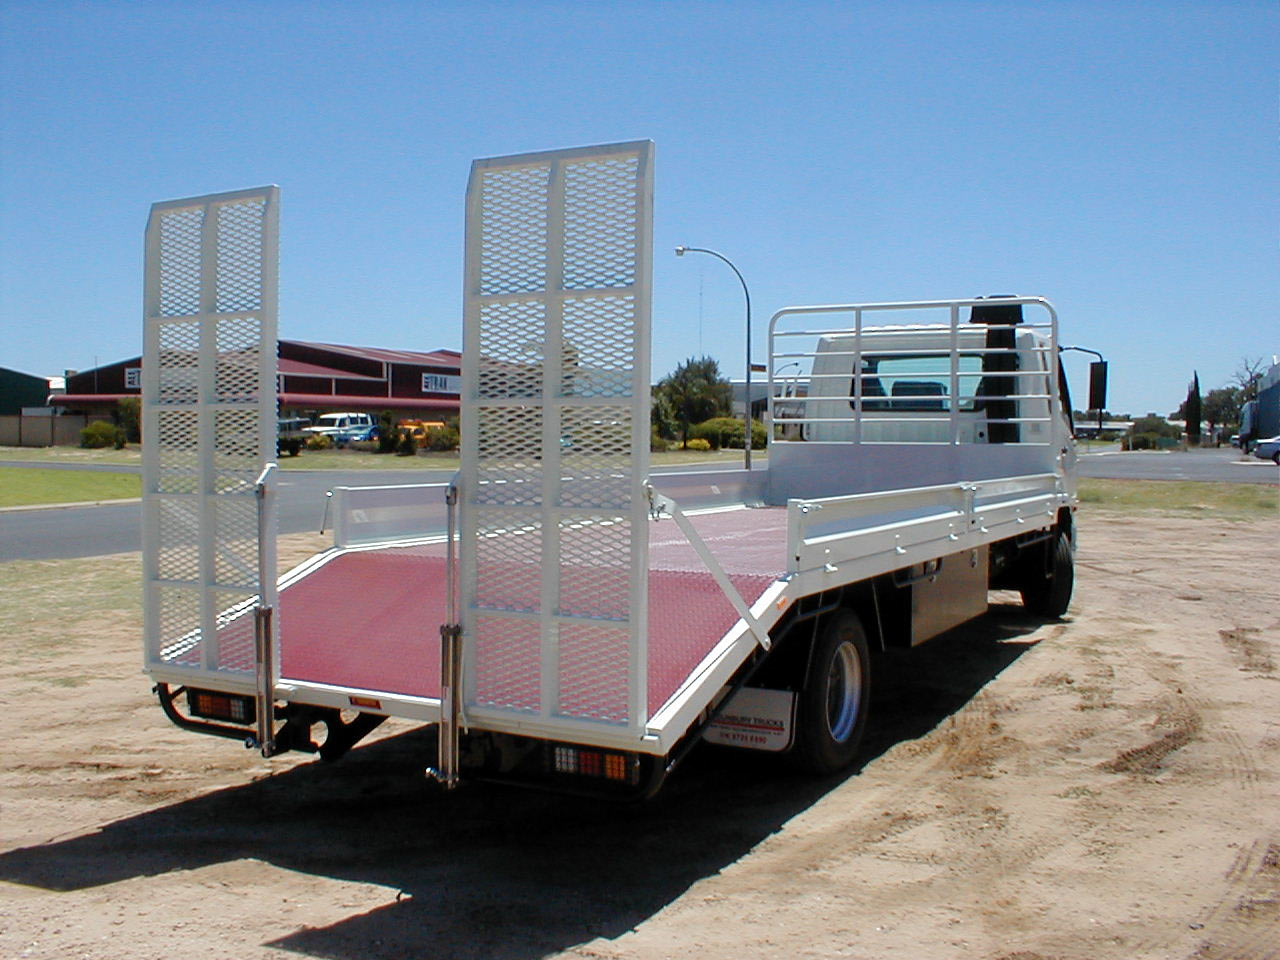 Mitsubishi Dual Cab Truck Dachtrger Front Runner Slimline